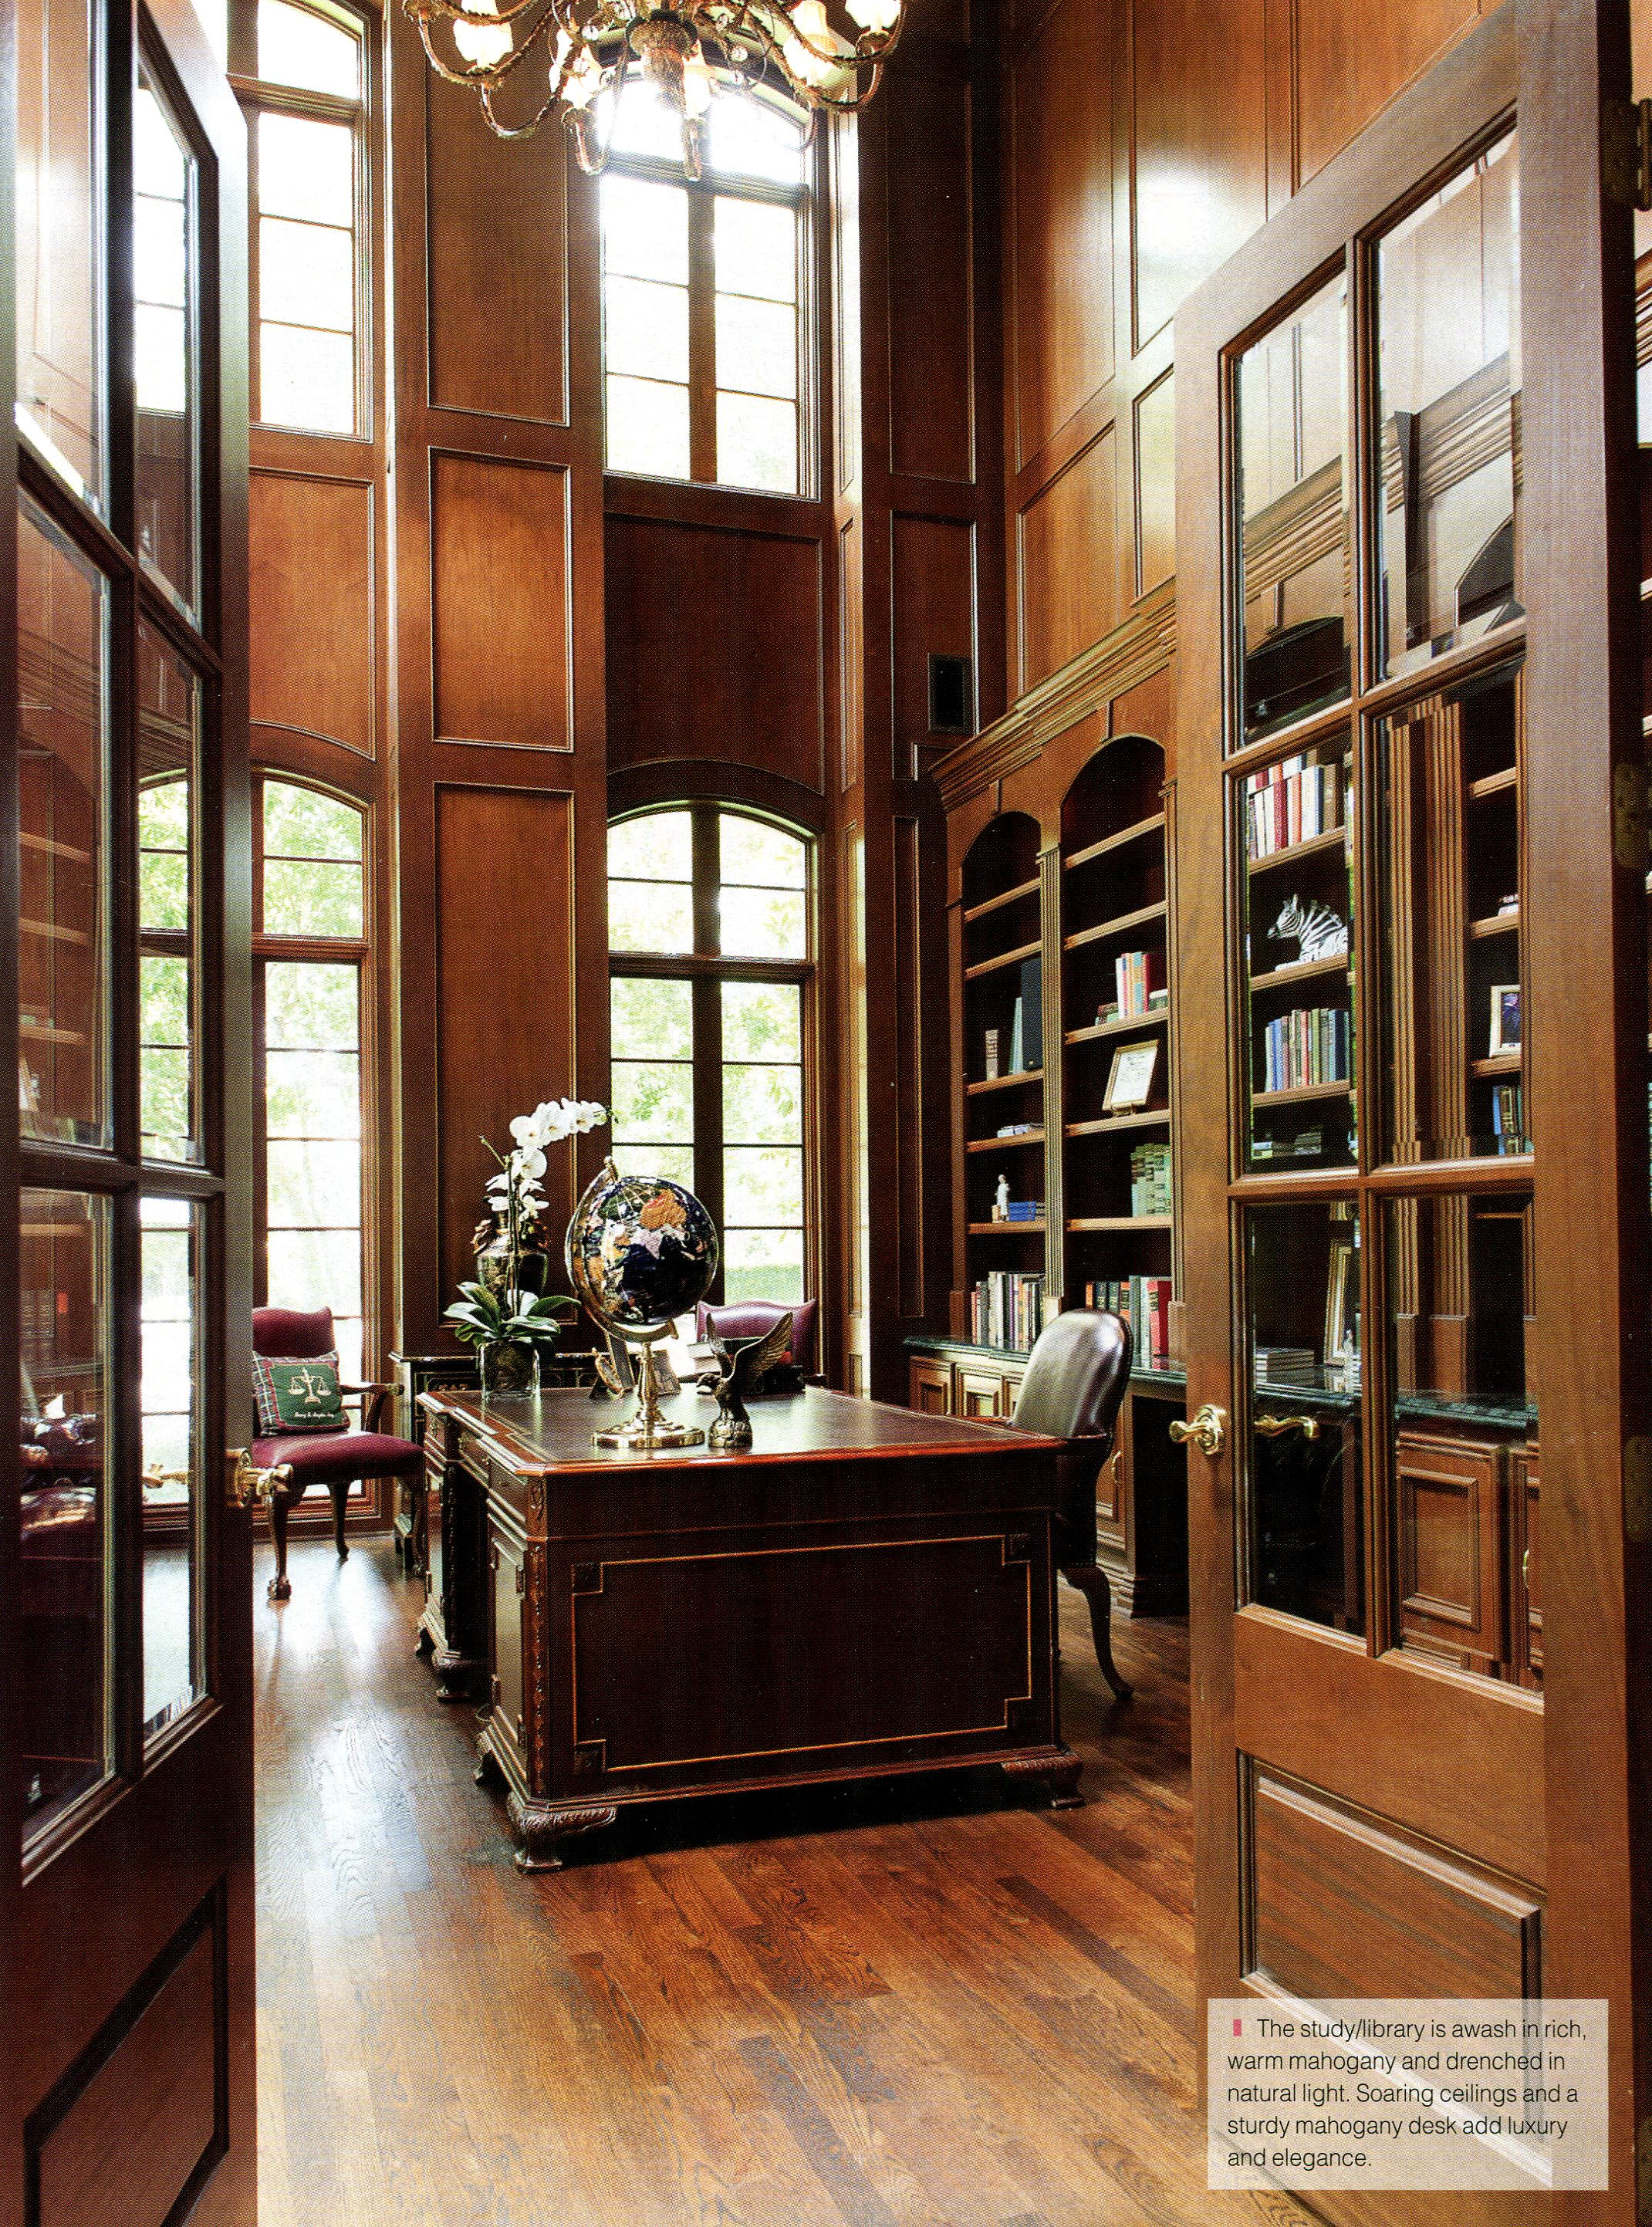 Interior Design Home Library: Home Library Design, House And